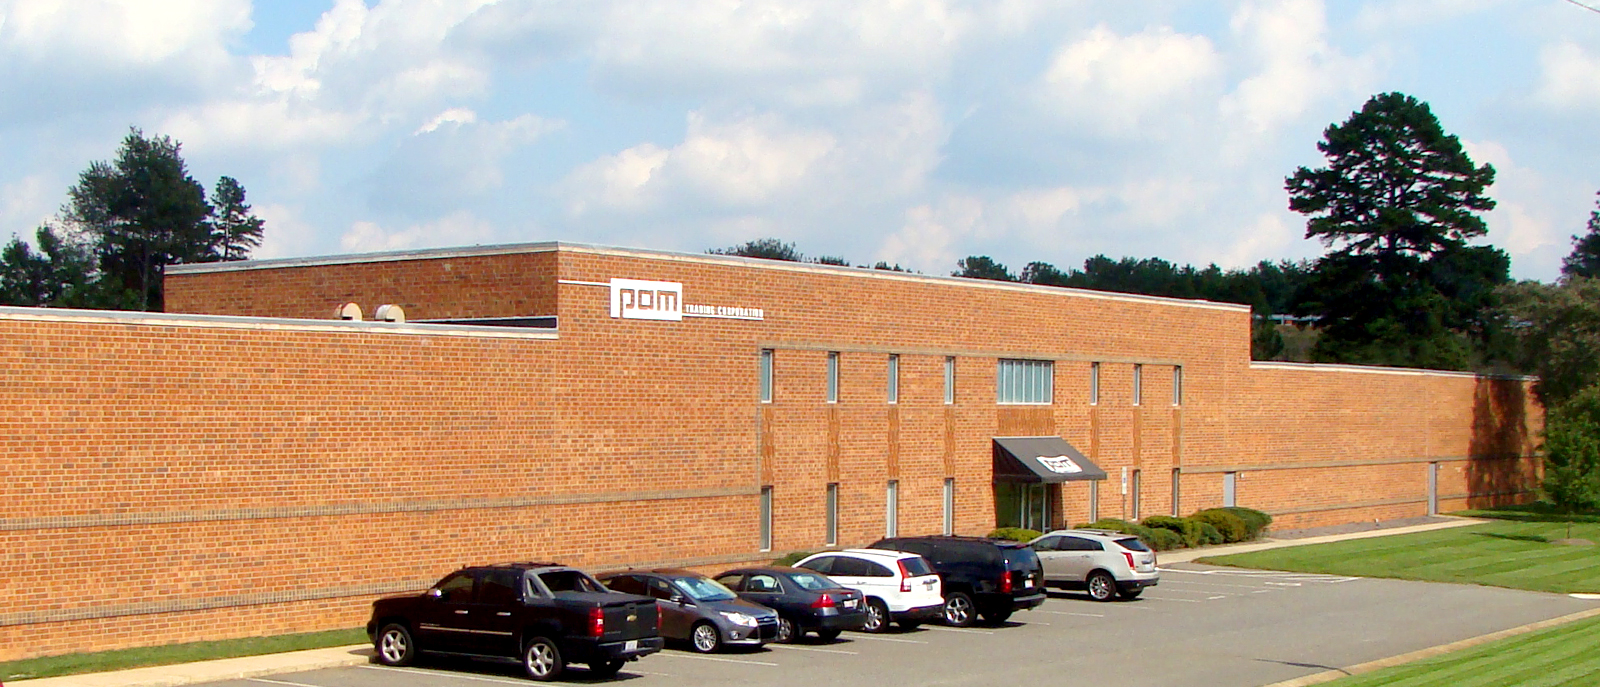 Pam Trading Corporation located Kernersville NC